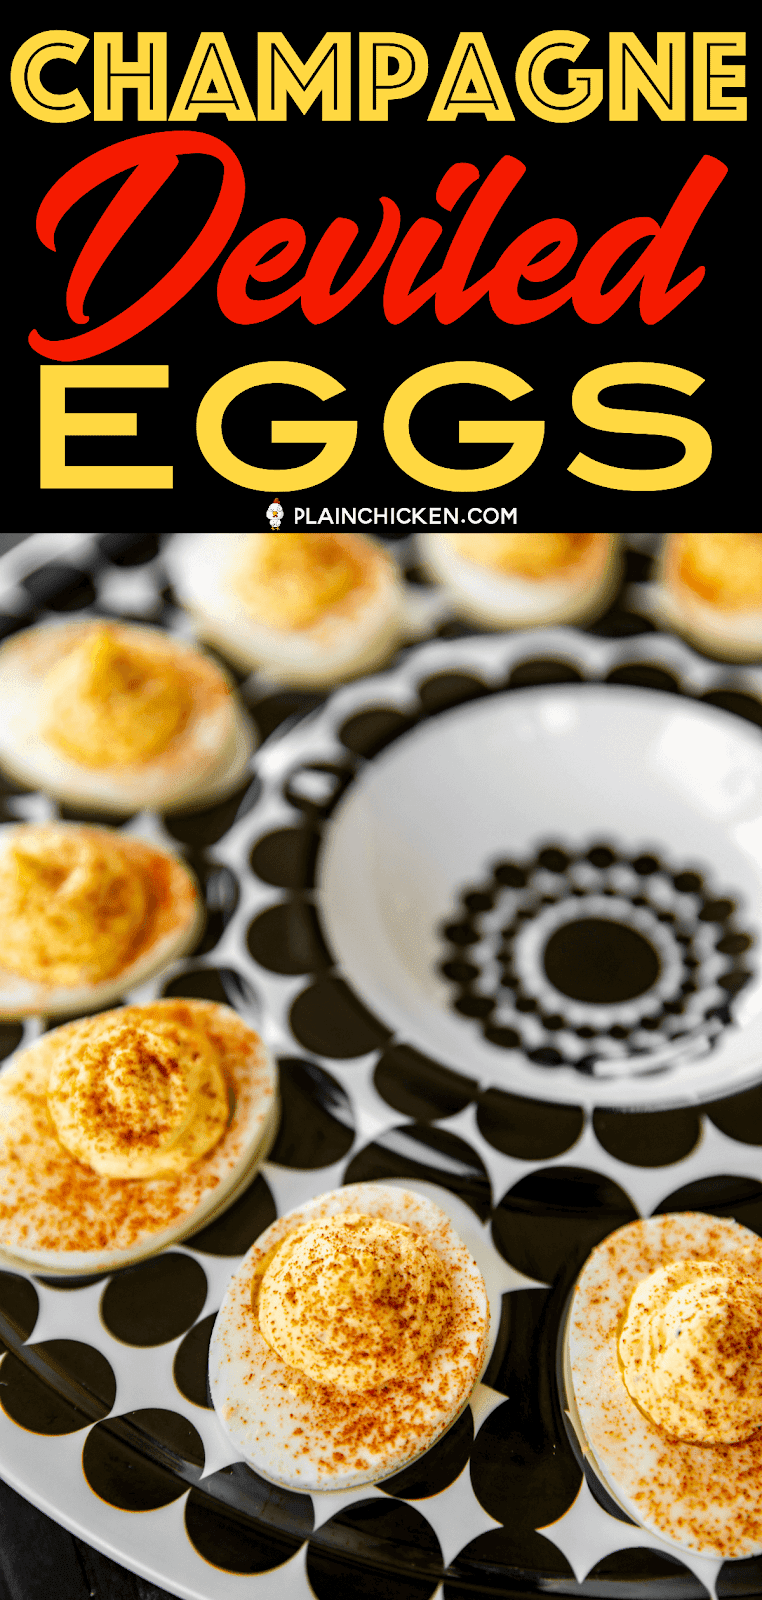 Champagne Deviled Eggs - seriously delicious!! Made these for a party and everyone raved about them!!! Can make ahead of time and refrigerate until ready to serve. Hard boiled eggs, mayonnaise, onion powder, champagne vinegar, salt, pepper, dry mustard. Perfect appetizer for parties and tailgating!! #deviledeggs #newyearsparty #partyfood #champagne